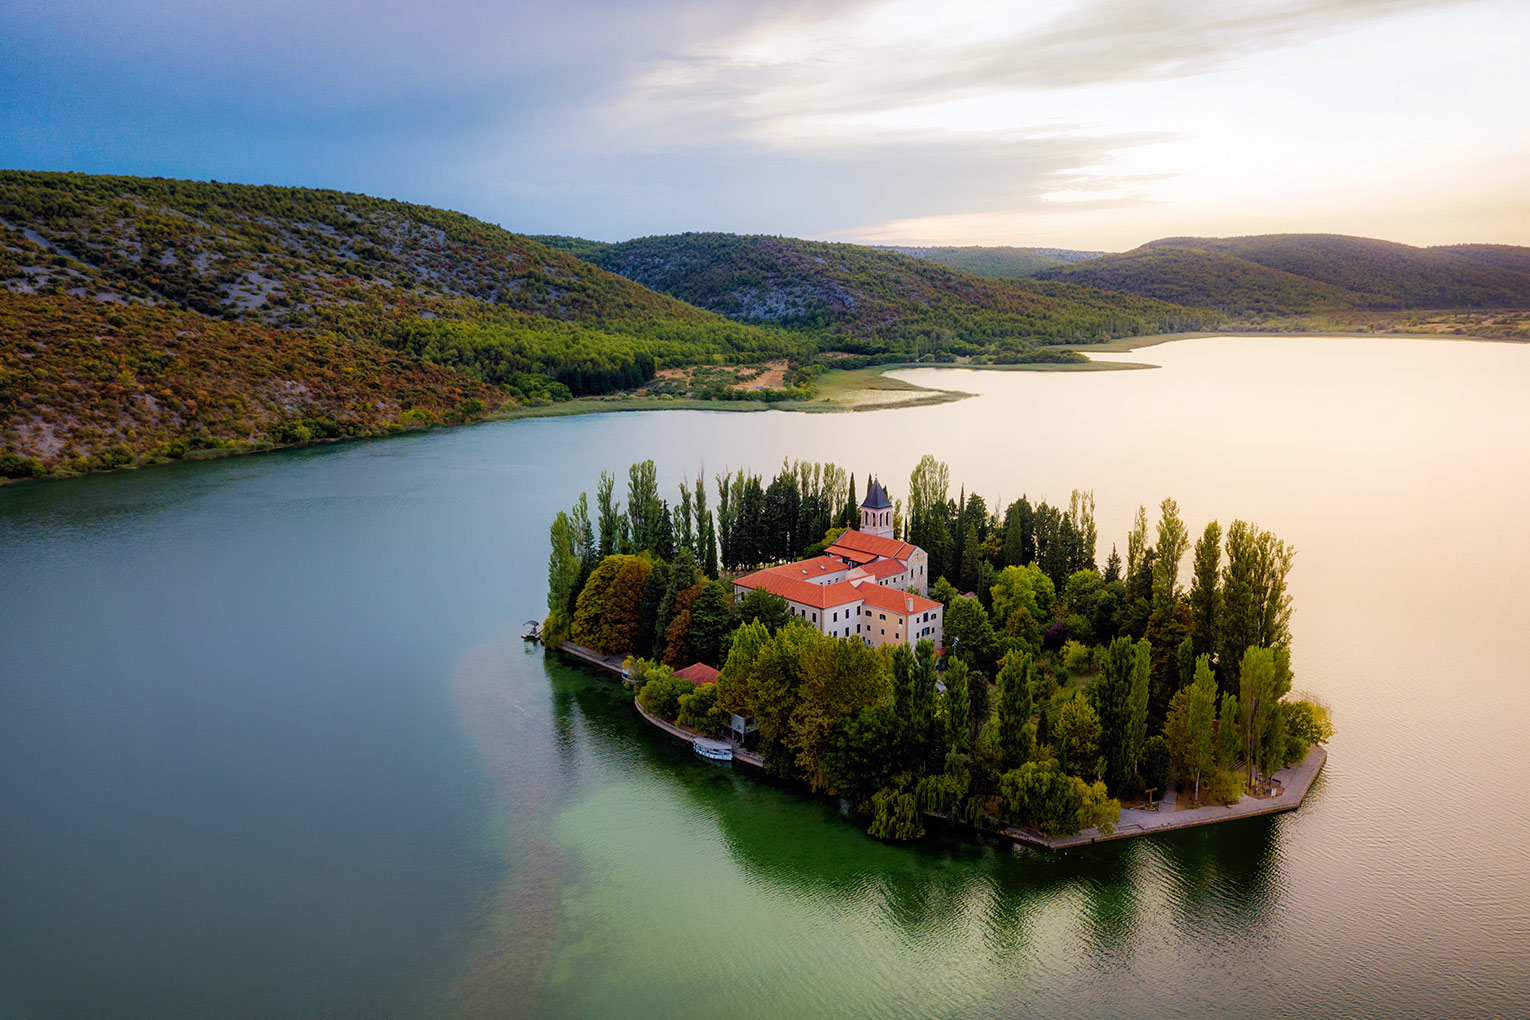 The island of Visovac in Krka National Park